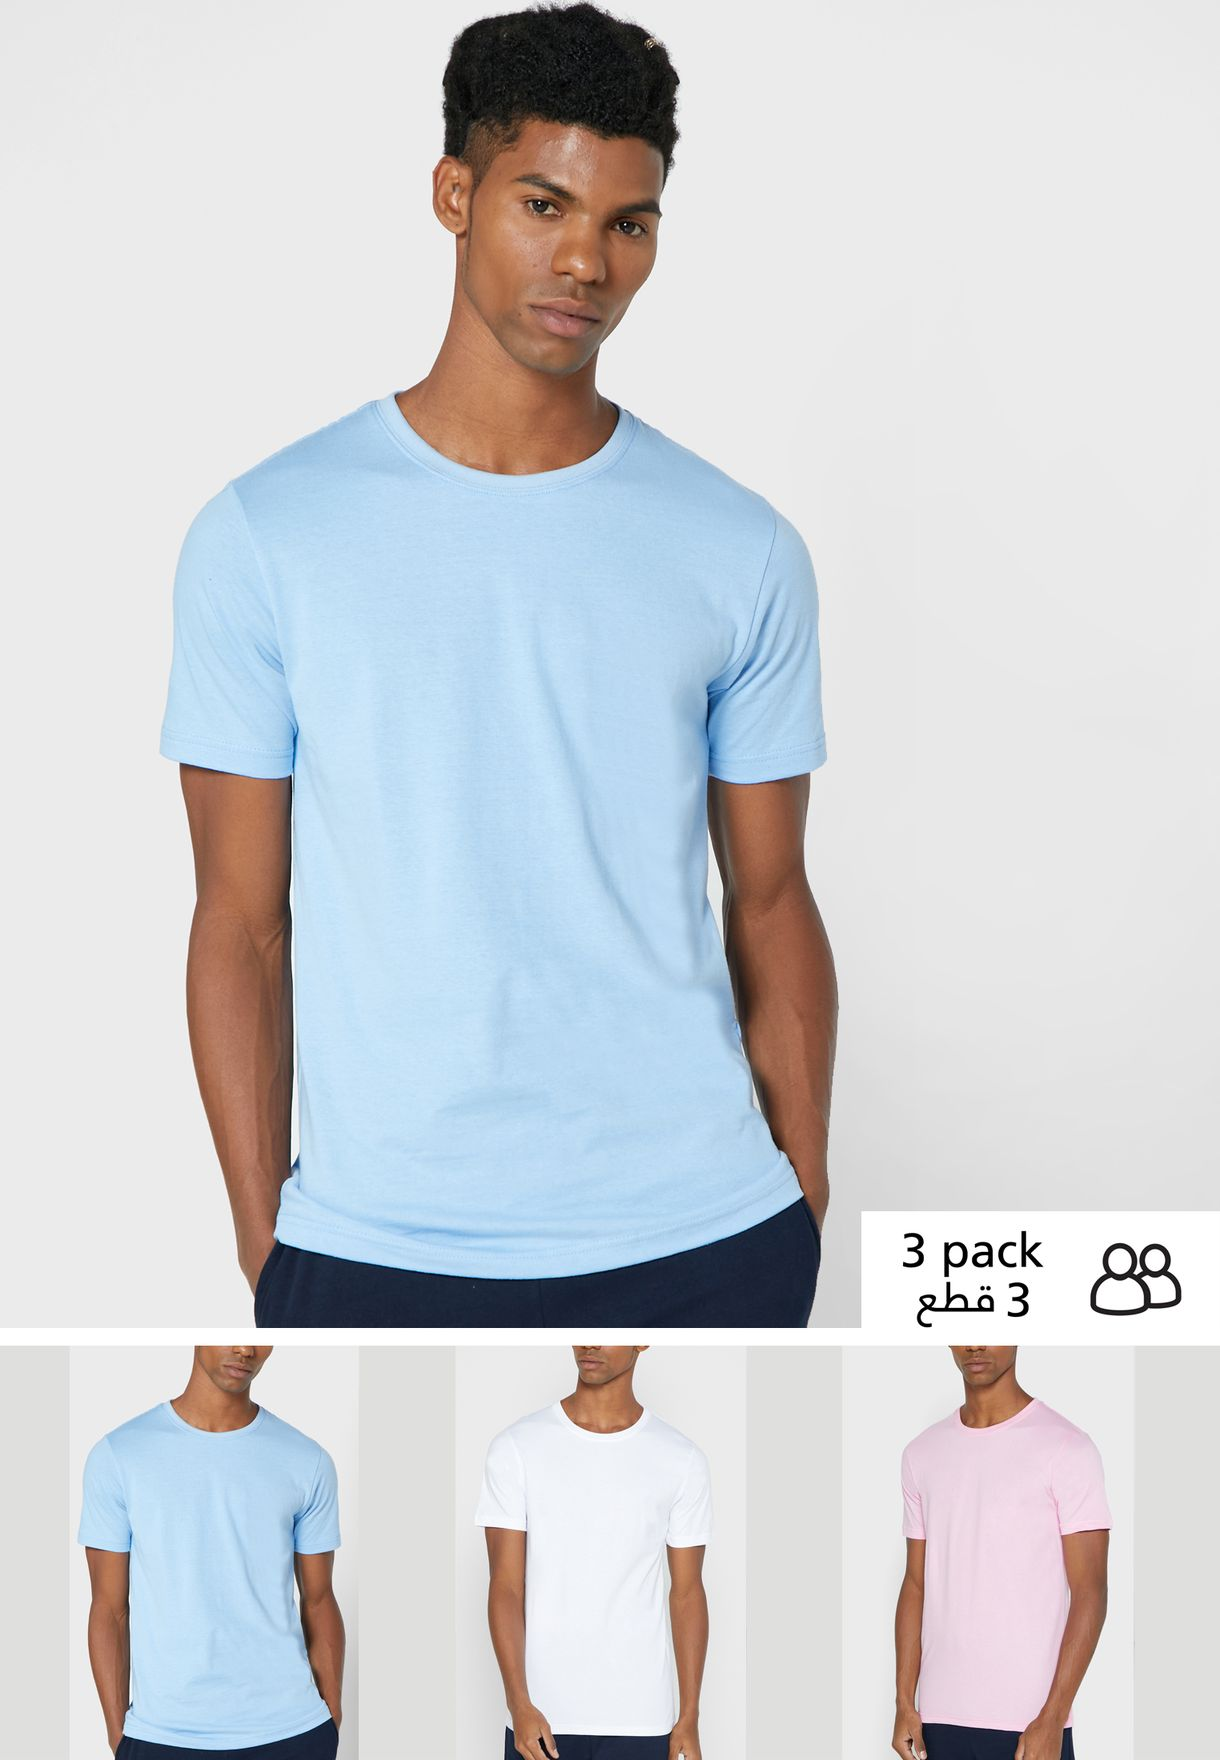 3 Pack Essential Crew Neck T-Shirt